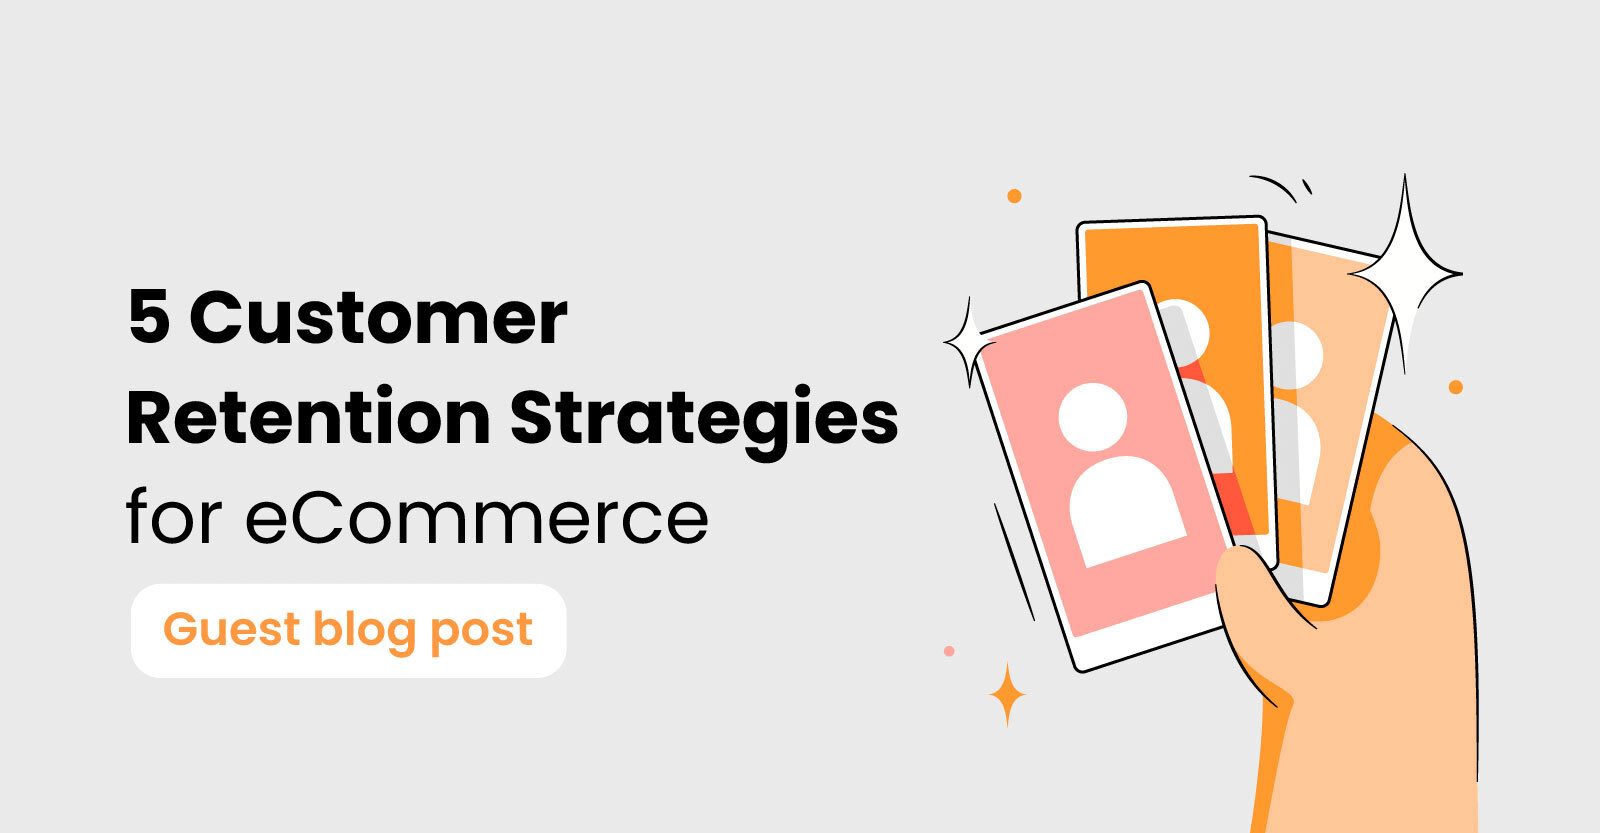 5 Customer Retention Strategies for eCommerce that still work in 2021